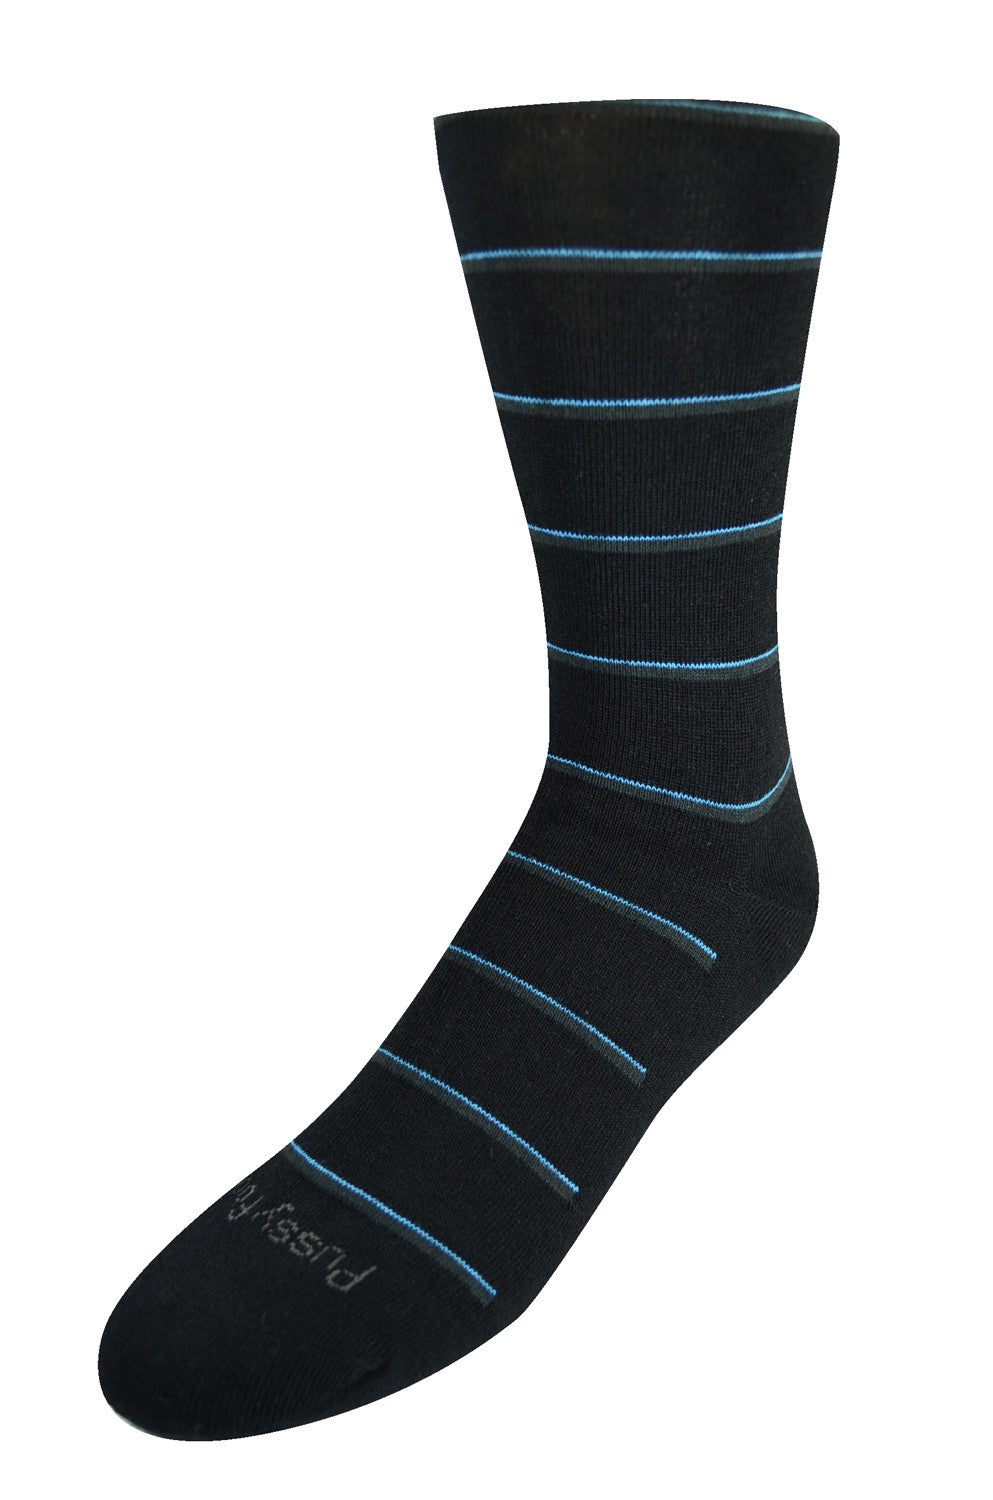 Pussyfoot Wool Non-Elastic Health Socks - Black Stripe